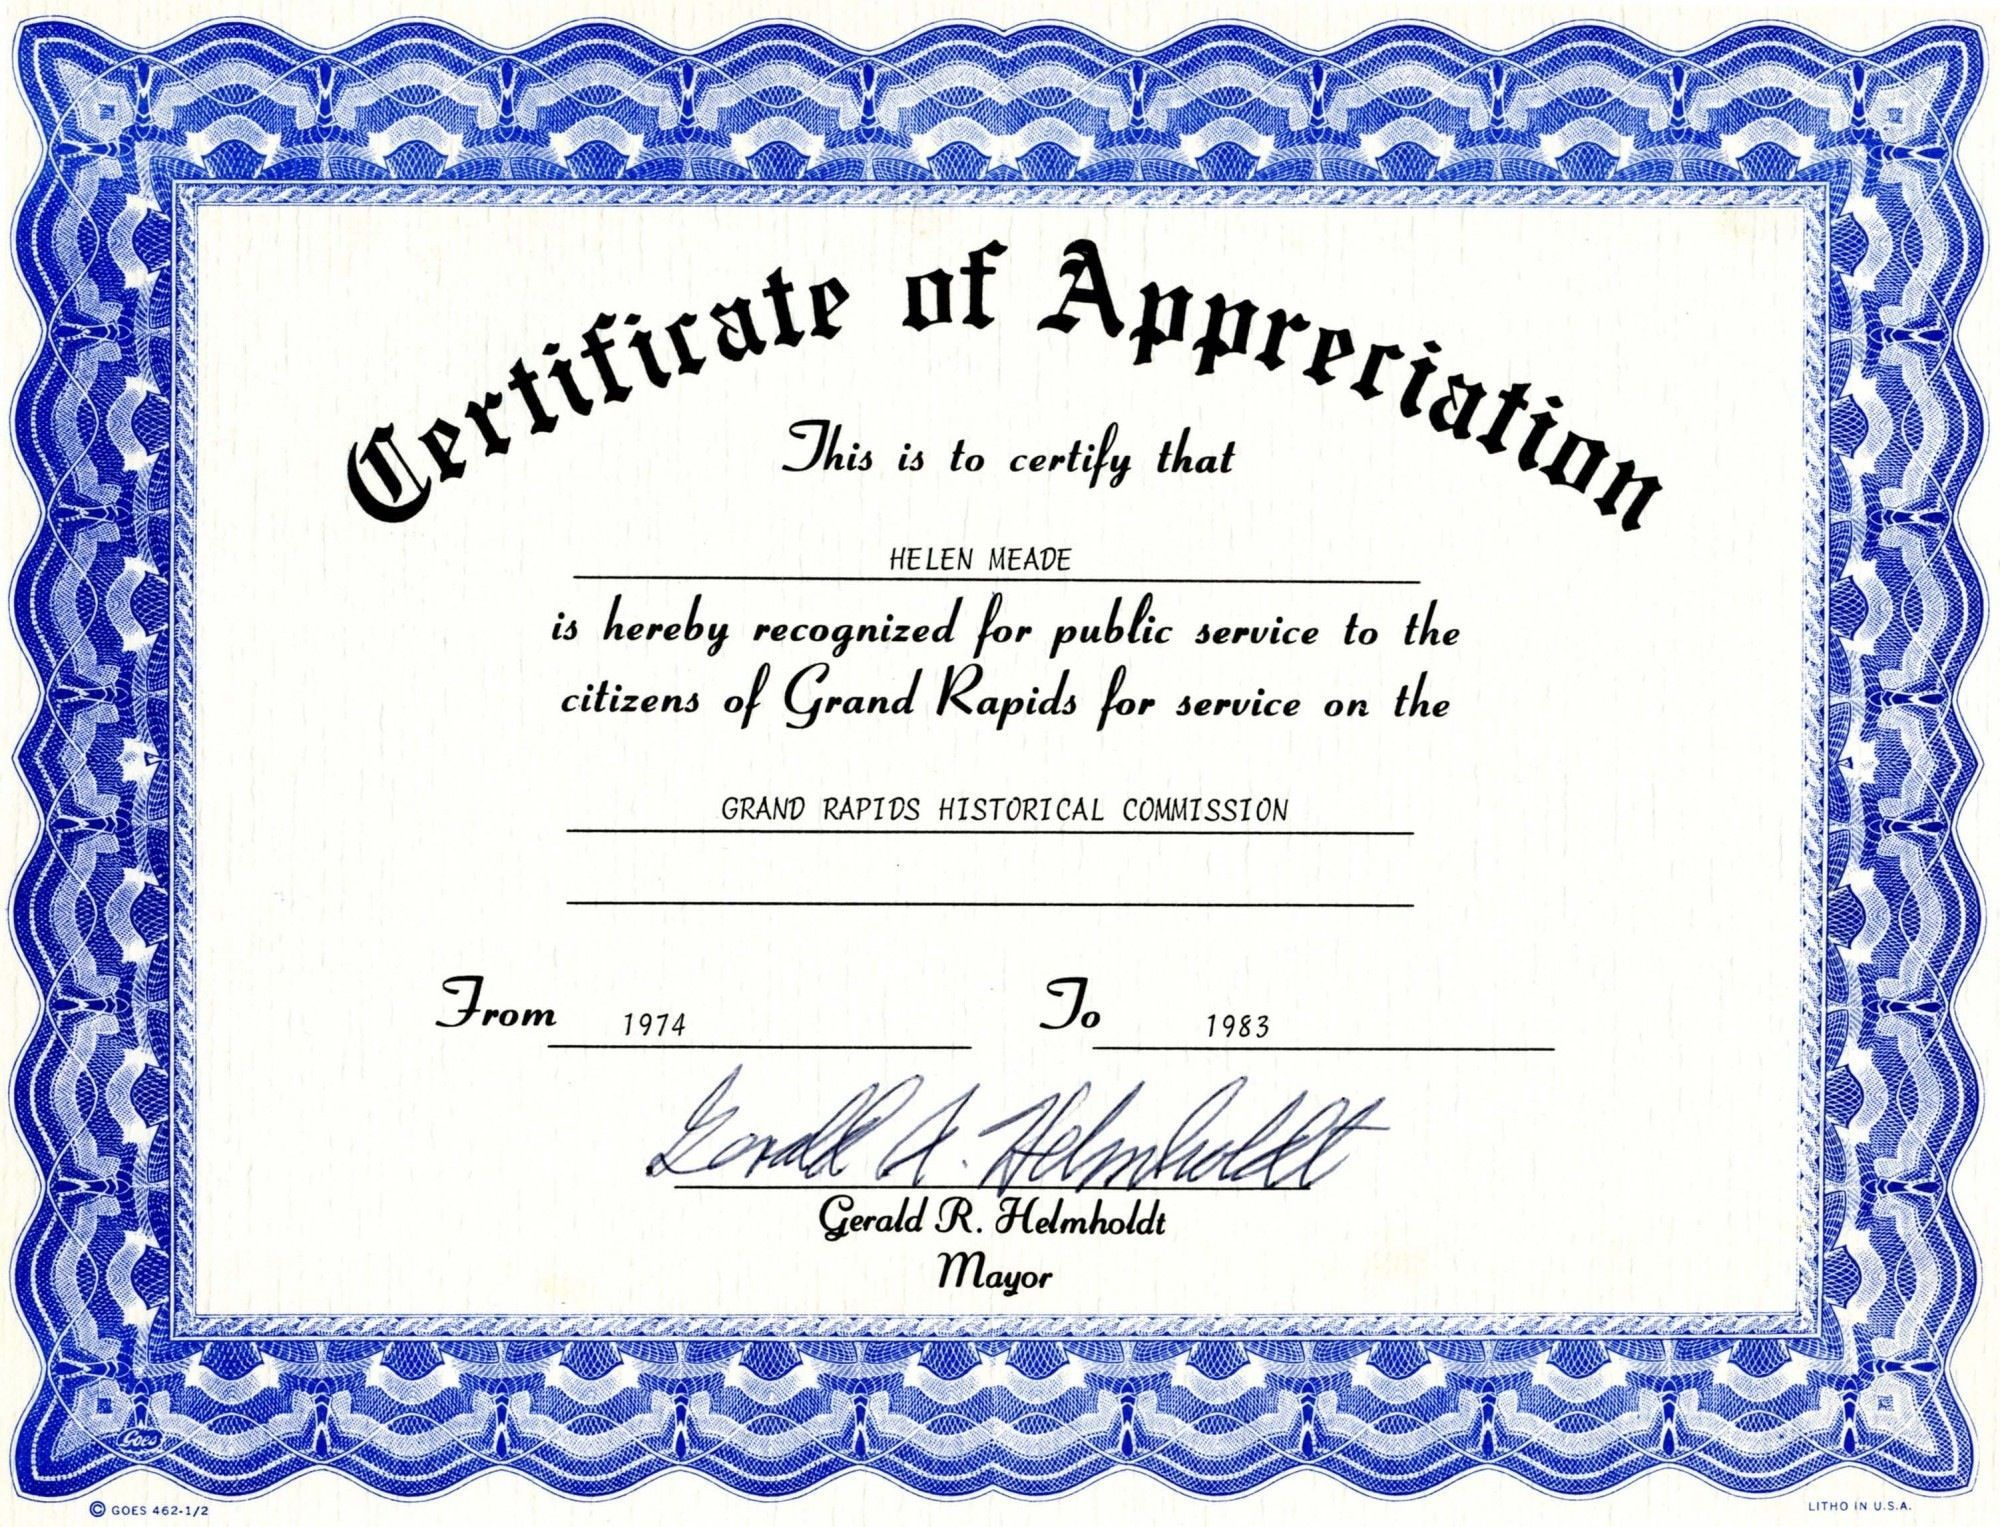 008 Wondrou Certificate Of Award Template Word Free High Definition Full